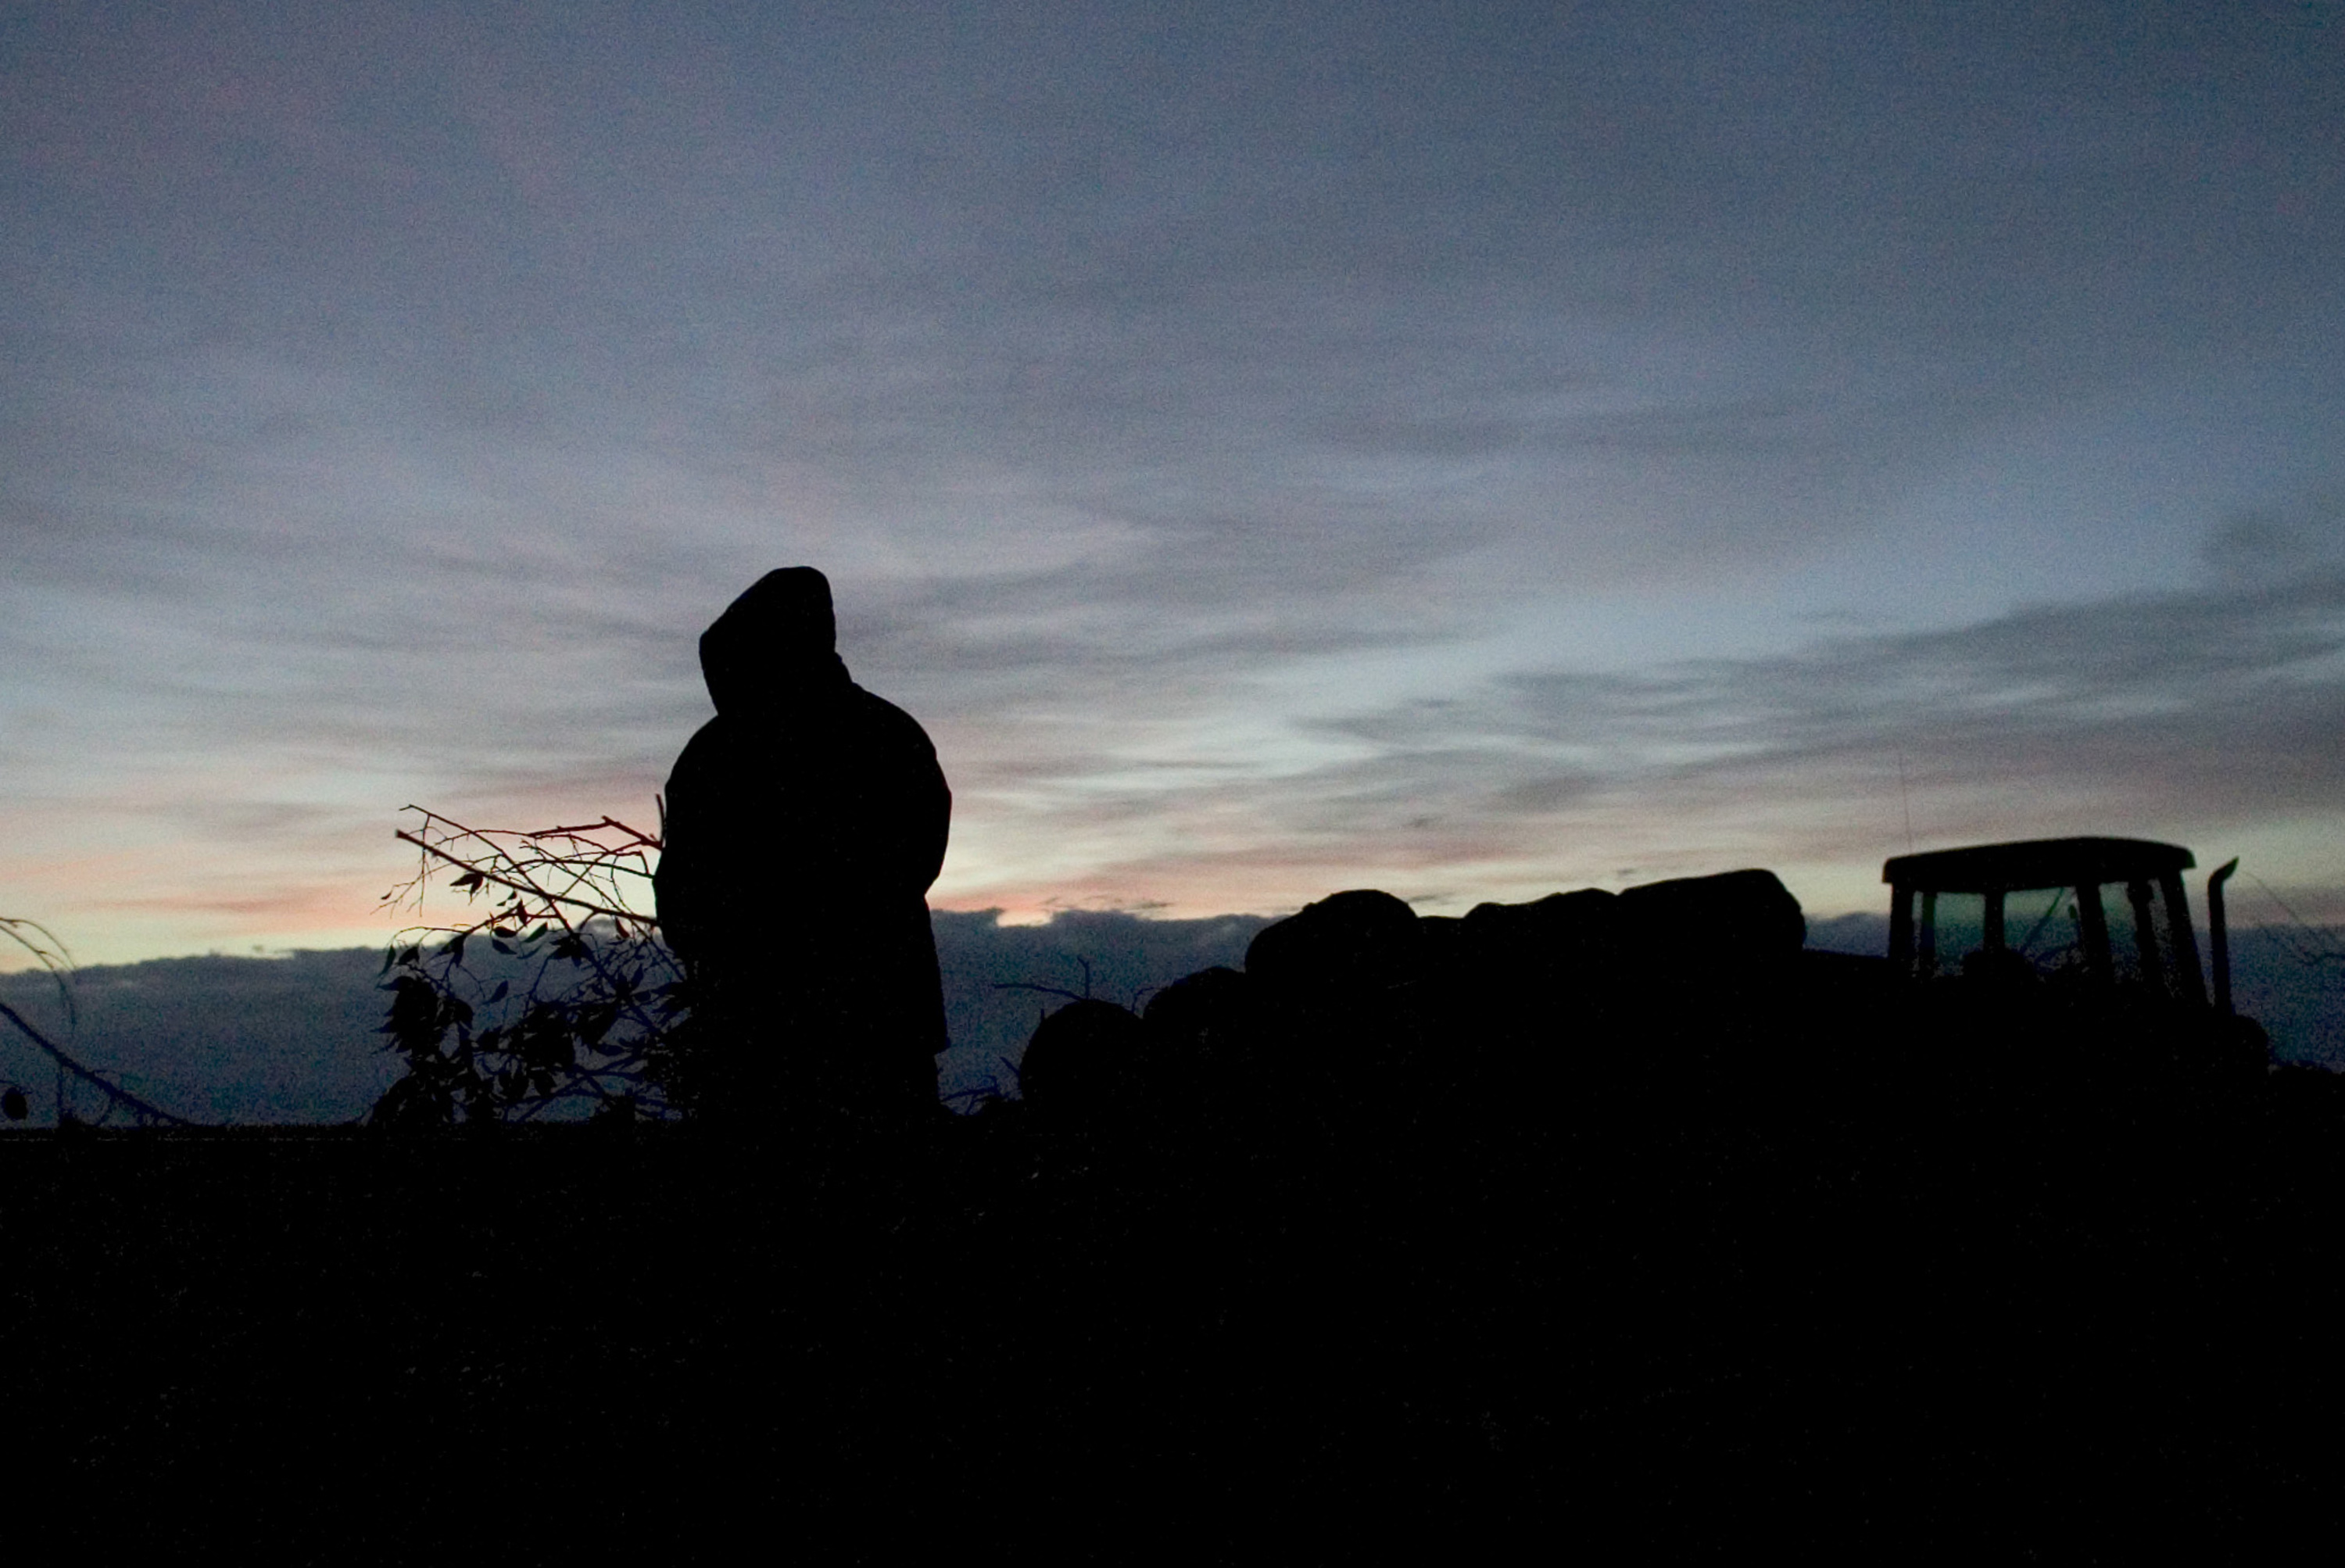 A man is silhouetted in the early morning hours near Huron, California. 2007